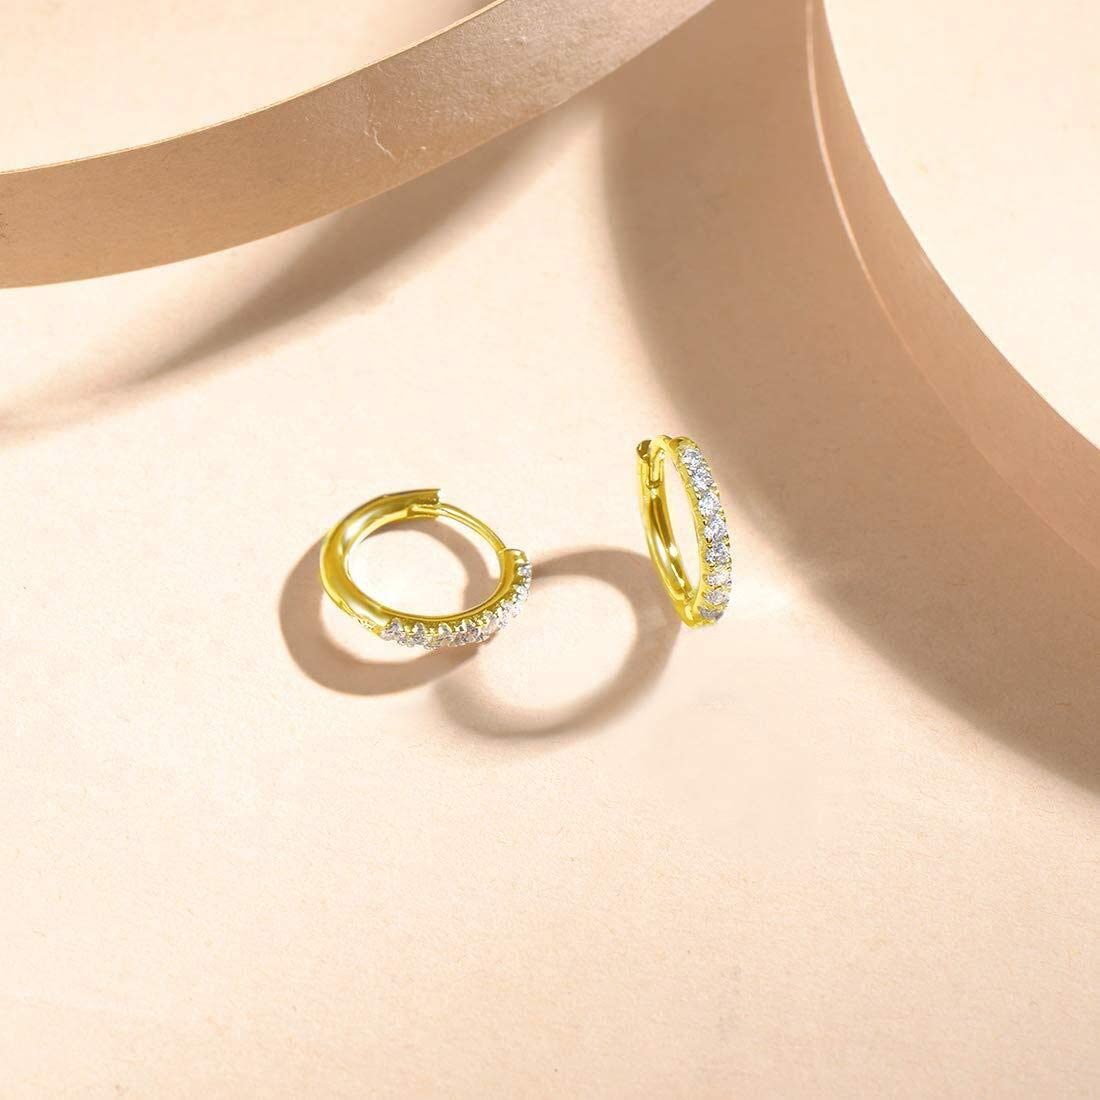 FANCIME White//Yellow Gold Plated Sterling Silver Hoop Earrings for Mothers Day CZ Cubic Zirconia Small Second Hole Hinged Cartilage Hoop Huggie Earrings For Women Girls 18mm 13mm Hoop Earrings